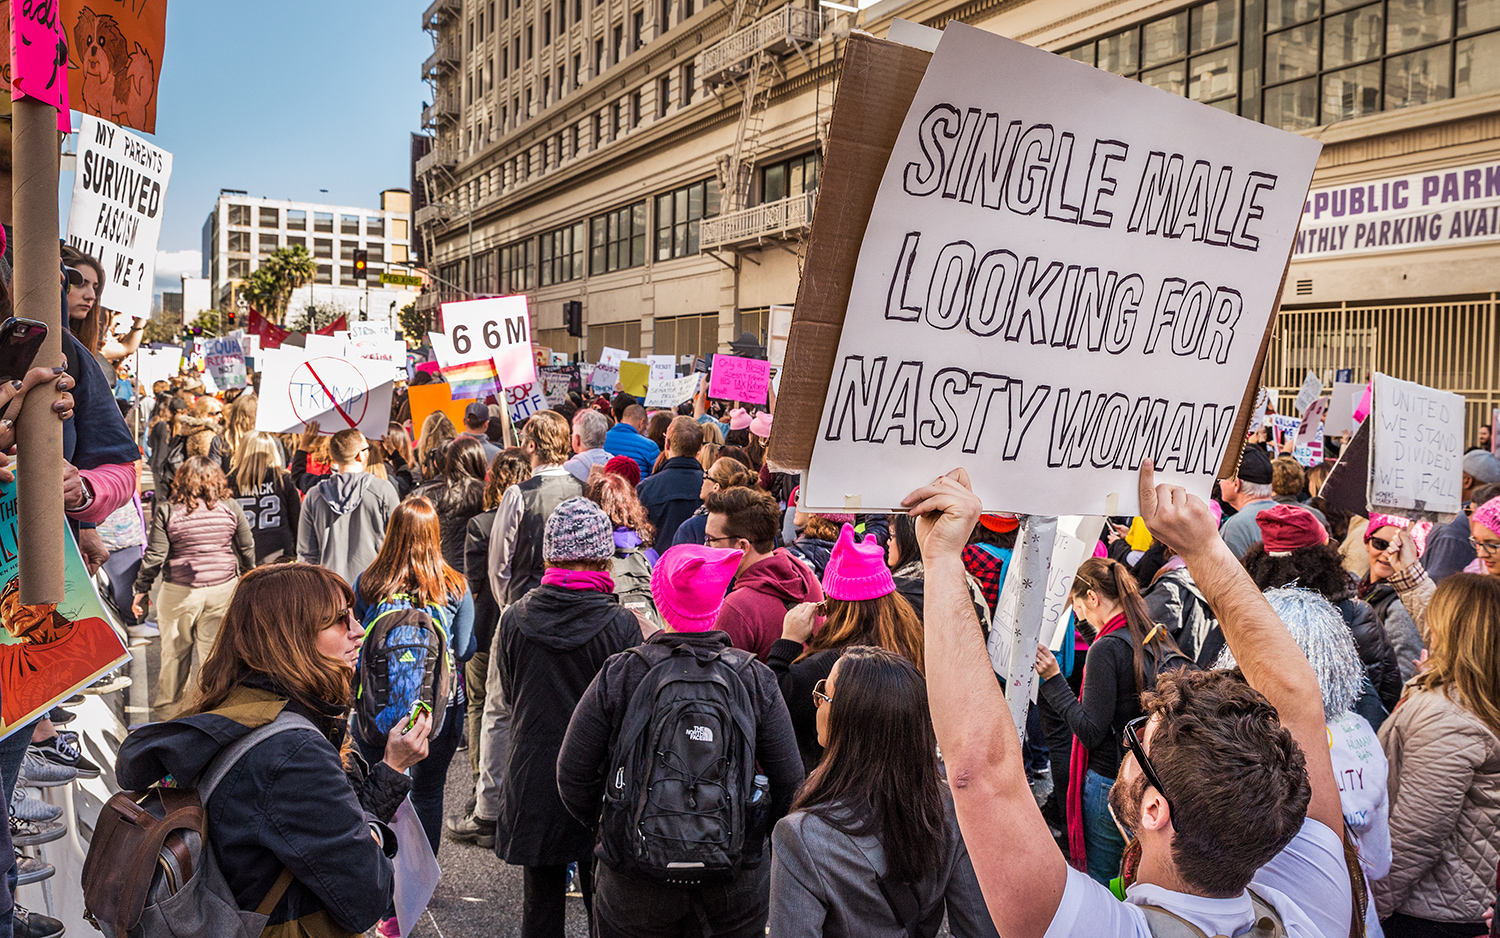 (2017)Signs in support of the Women's March came in every flavor. The influence of Hillary Clinton's campaign were overt.